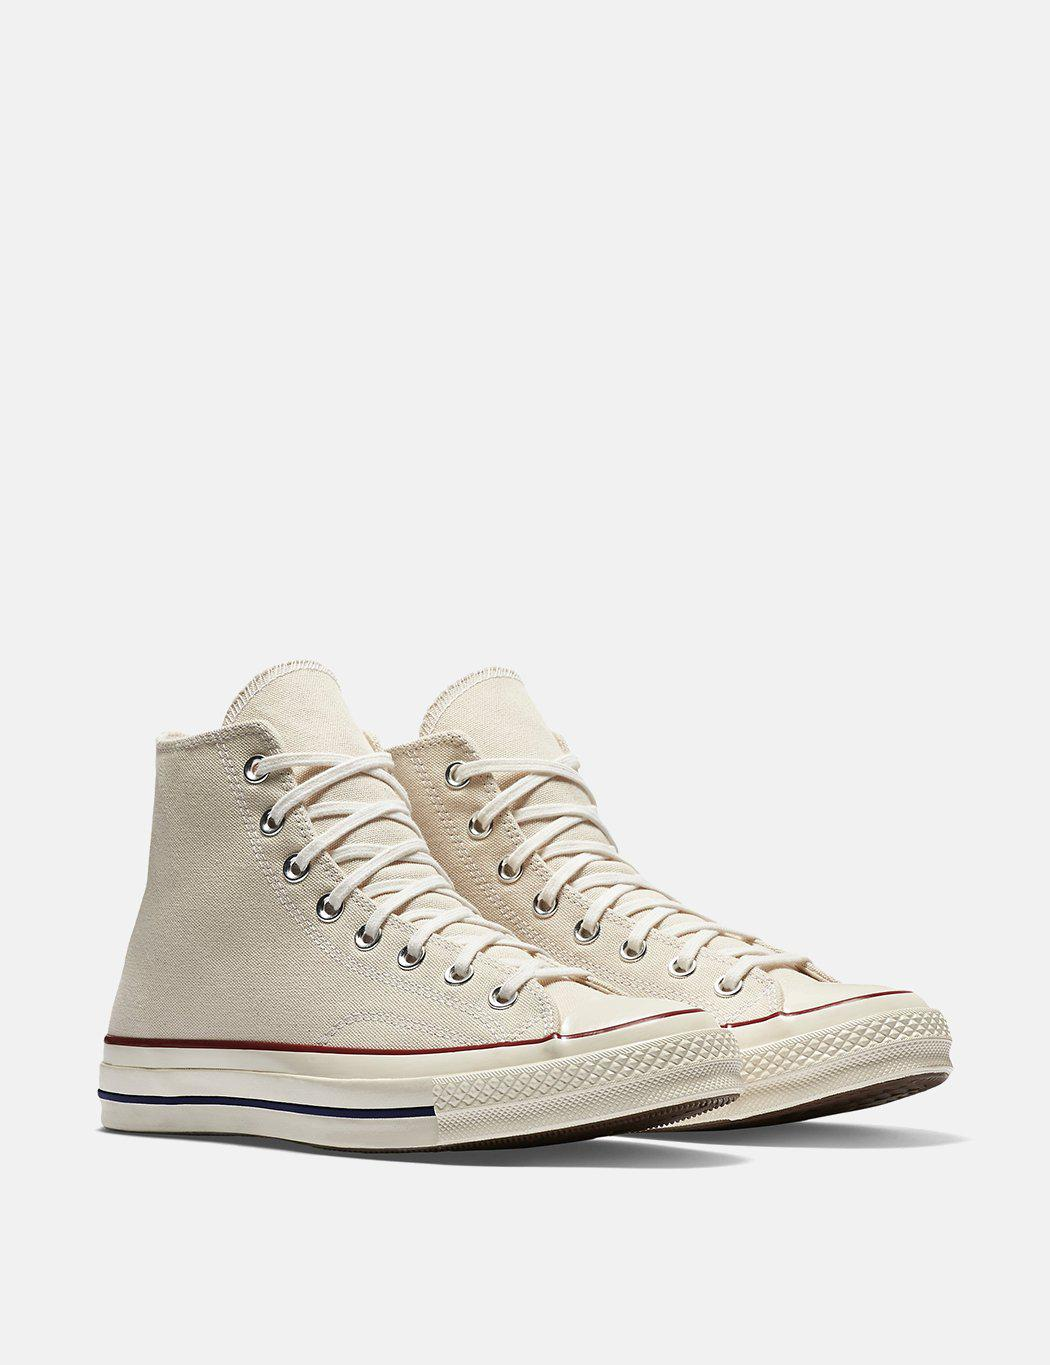 07ae7caecde1 Converse 70 s Chuck Taylor Hi 144755c (canvas) for Men - Save 72% - Lyst